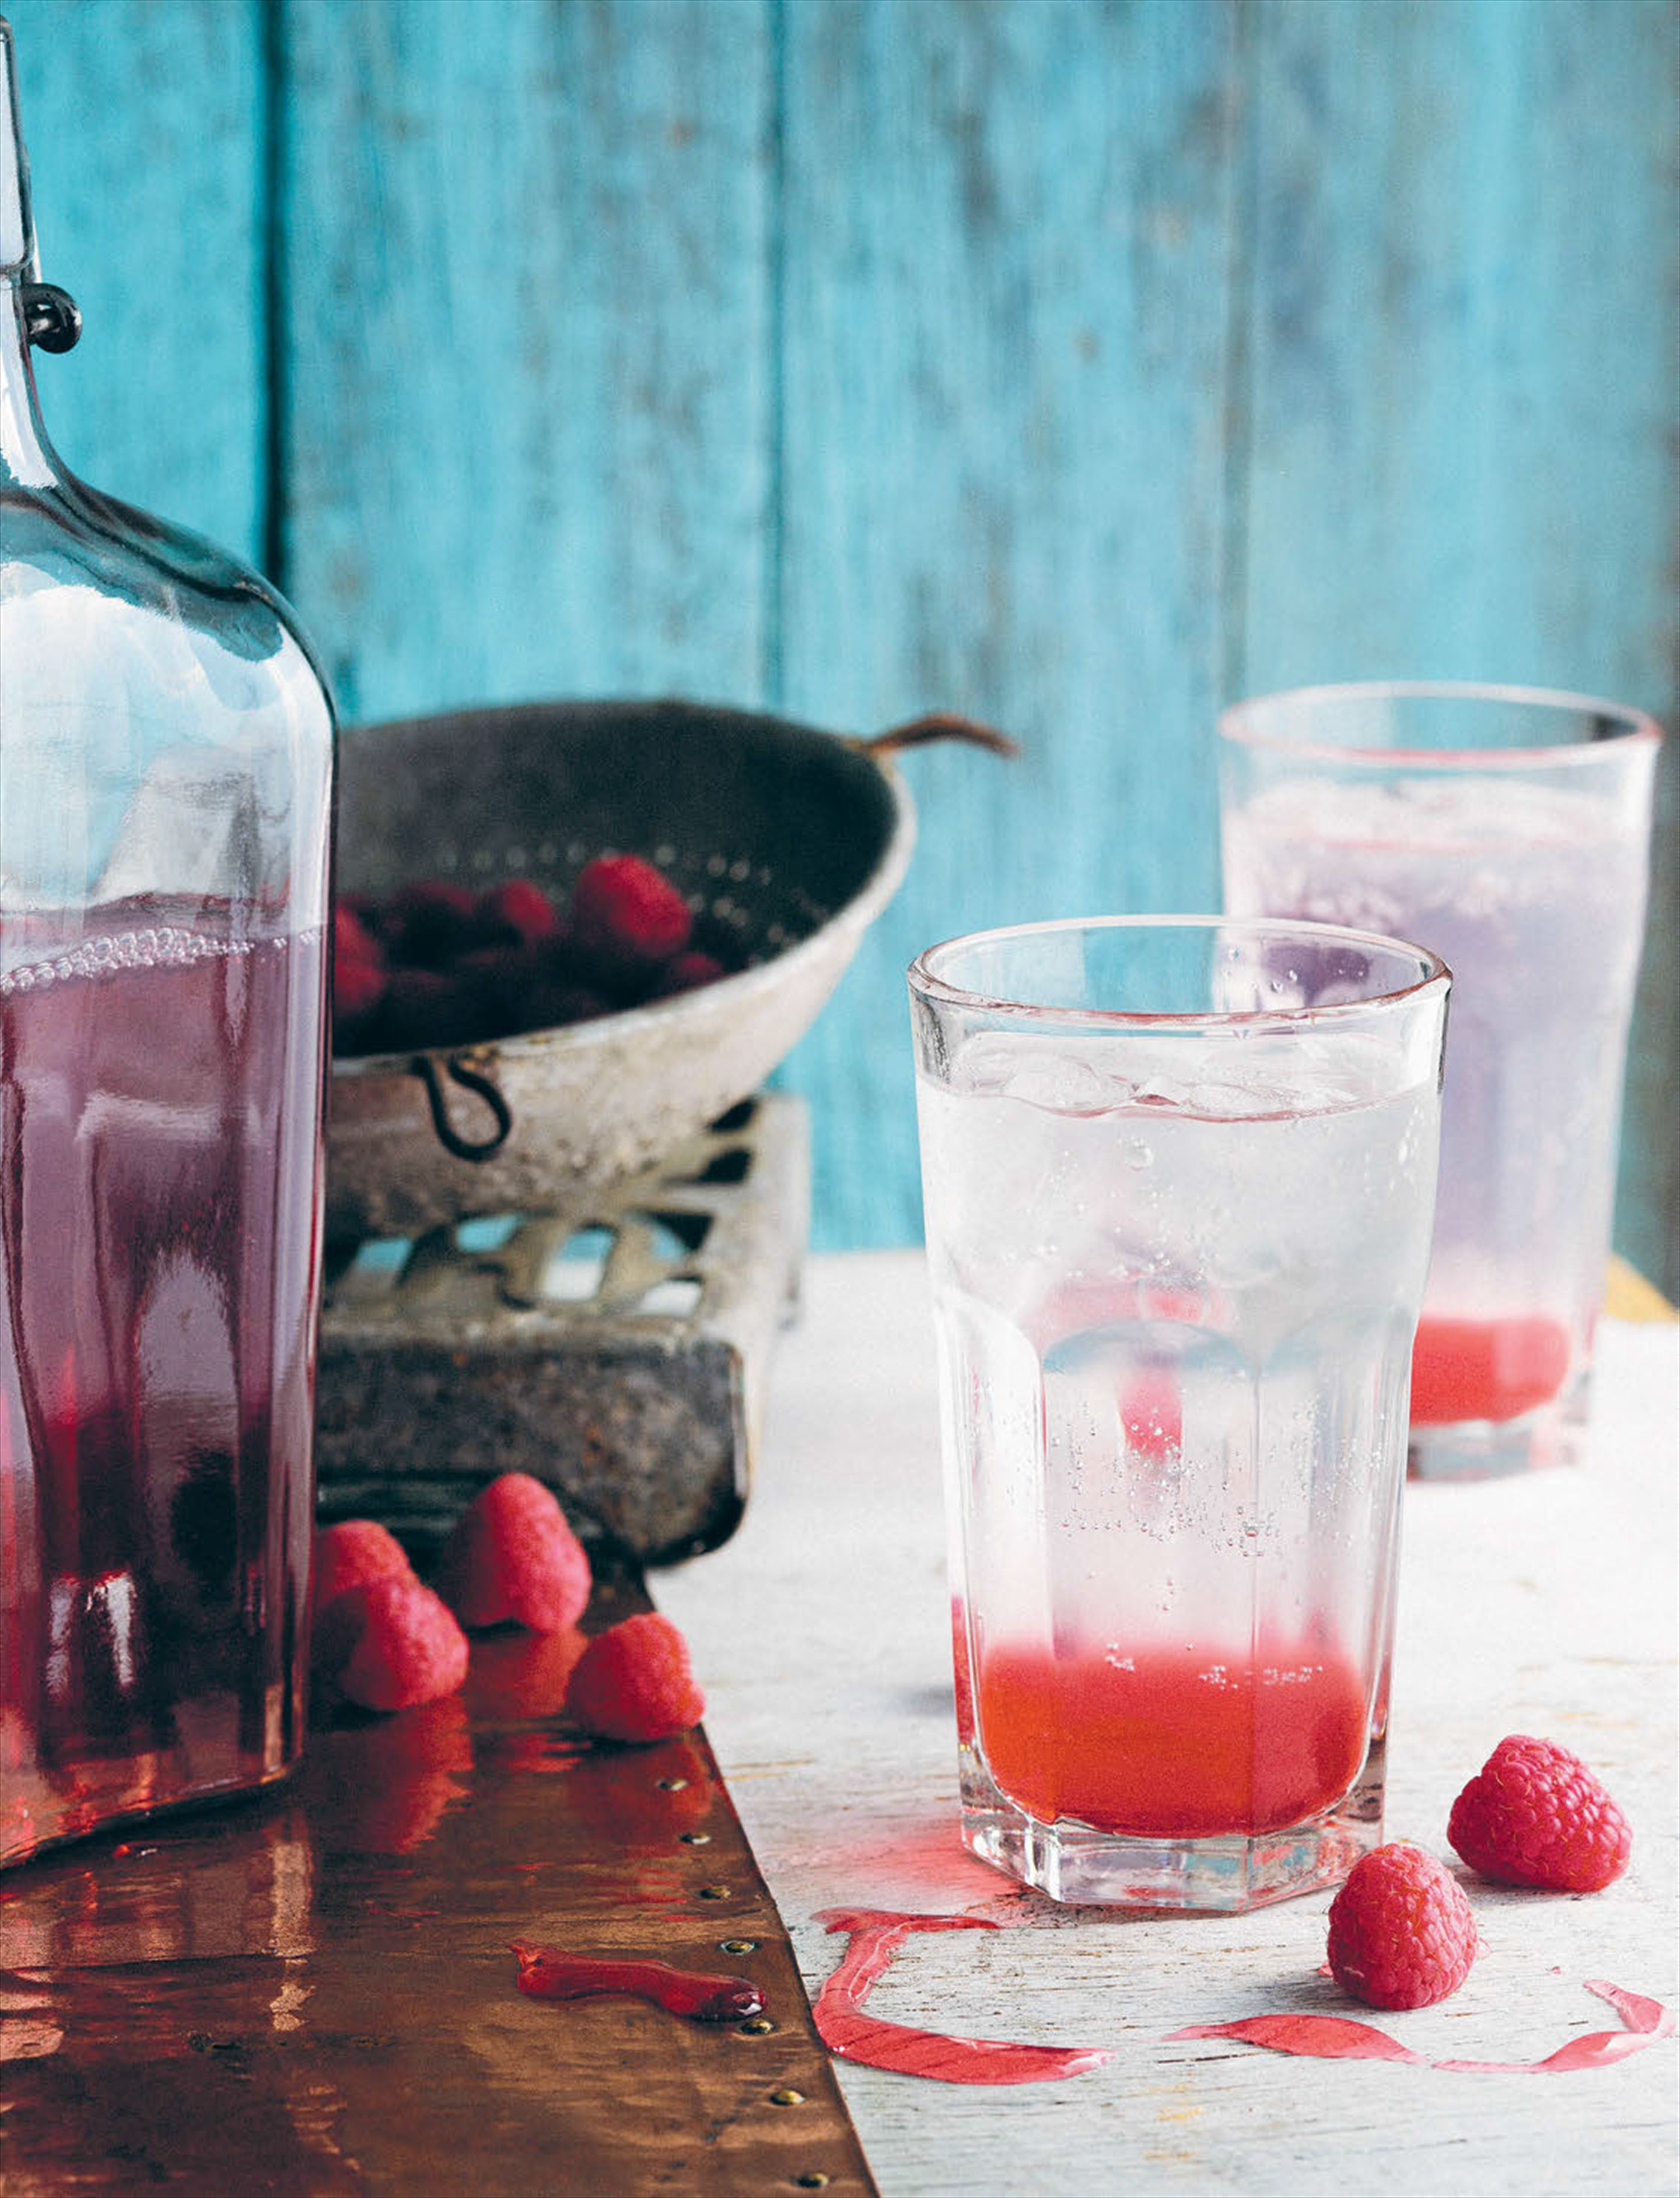 Raspberry and apple cordial